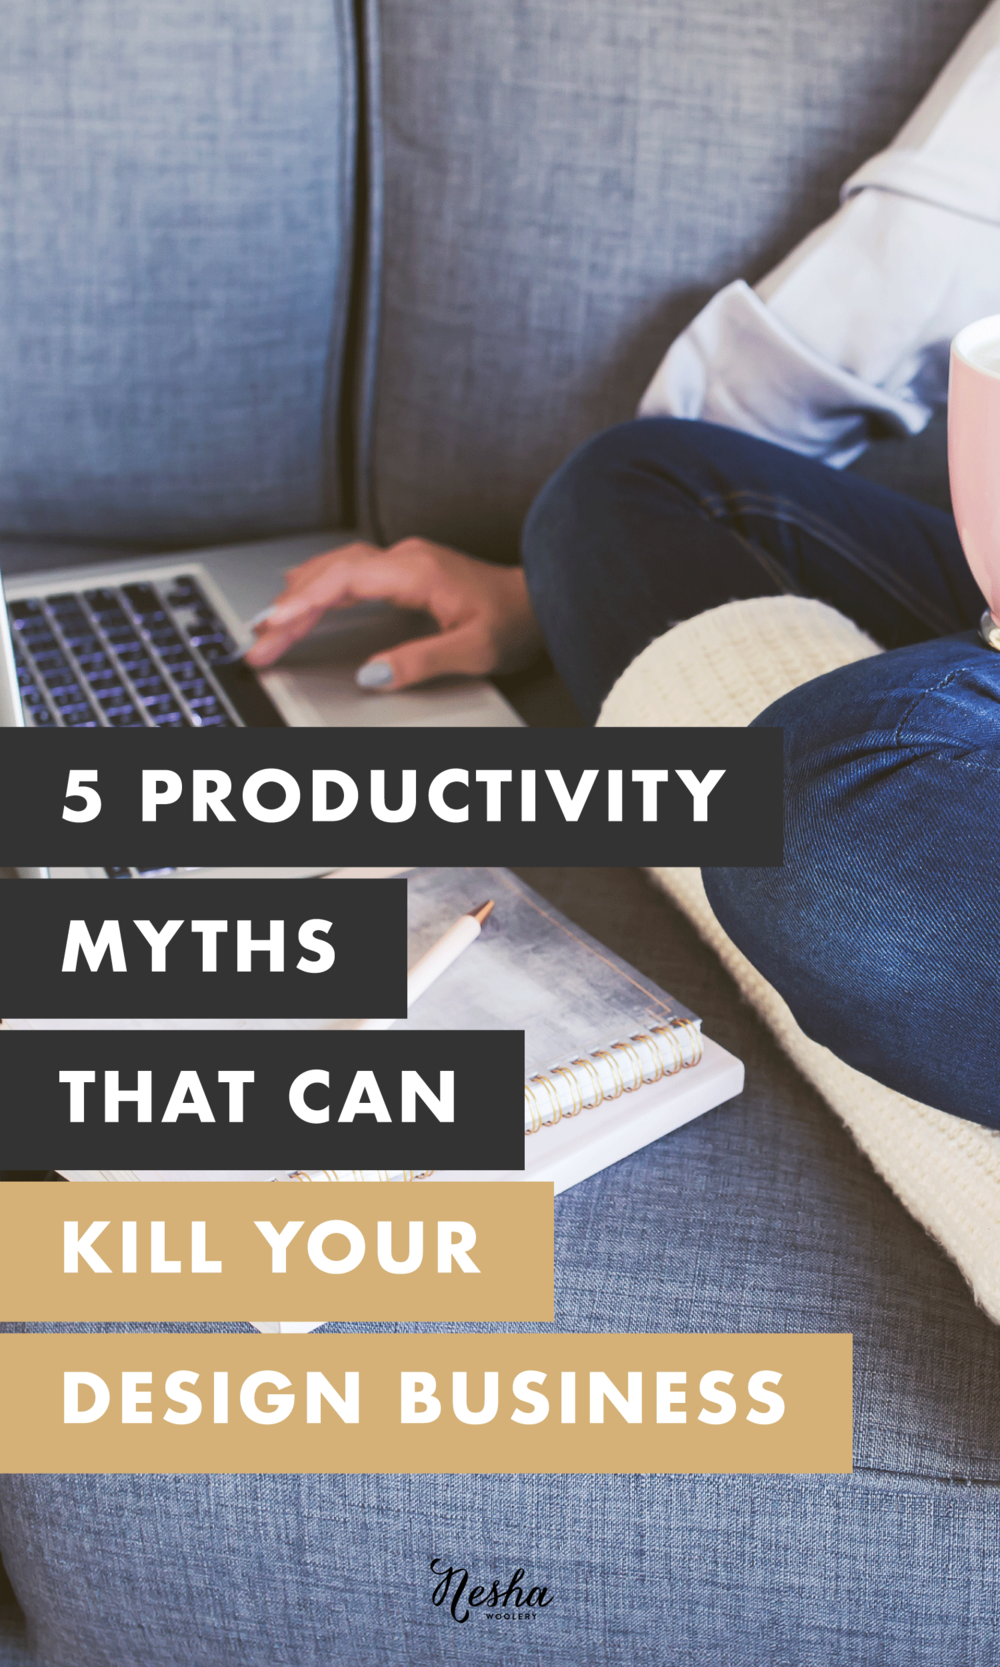 7 productivity myths that can kill your freelance design business.png